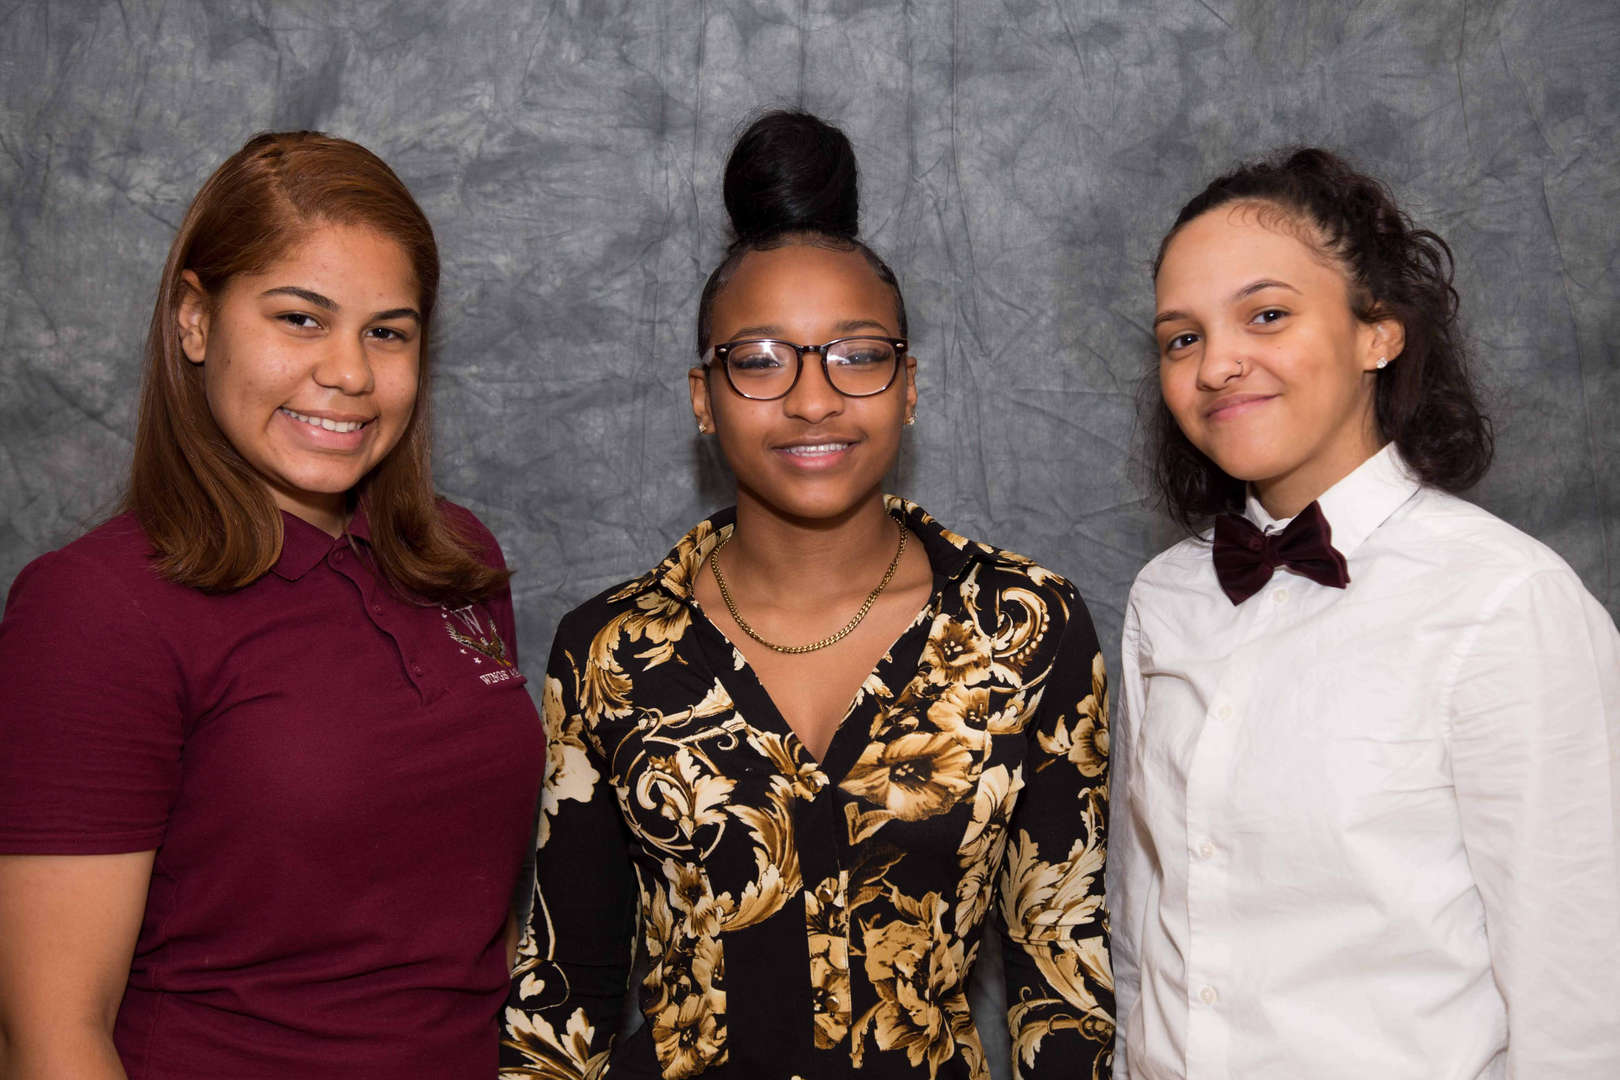 Three students smiling together in front of a gray background